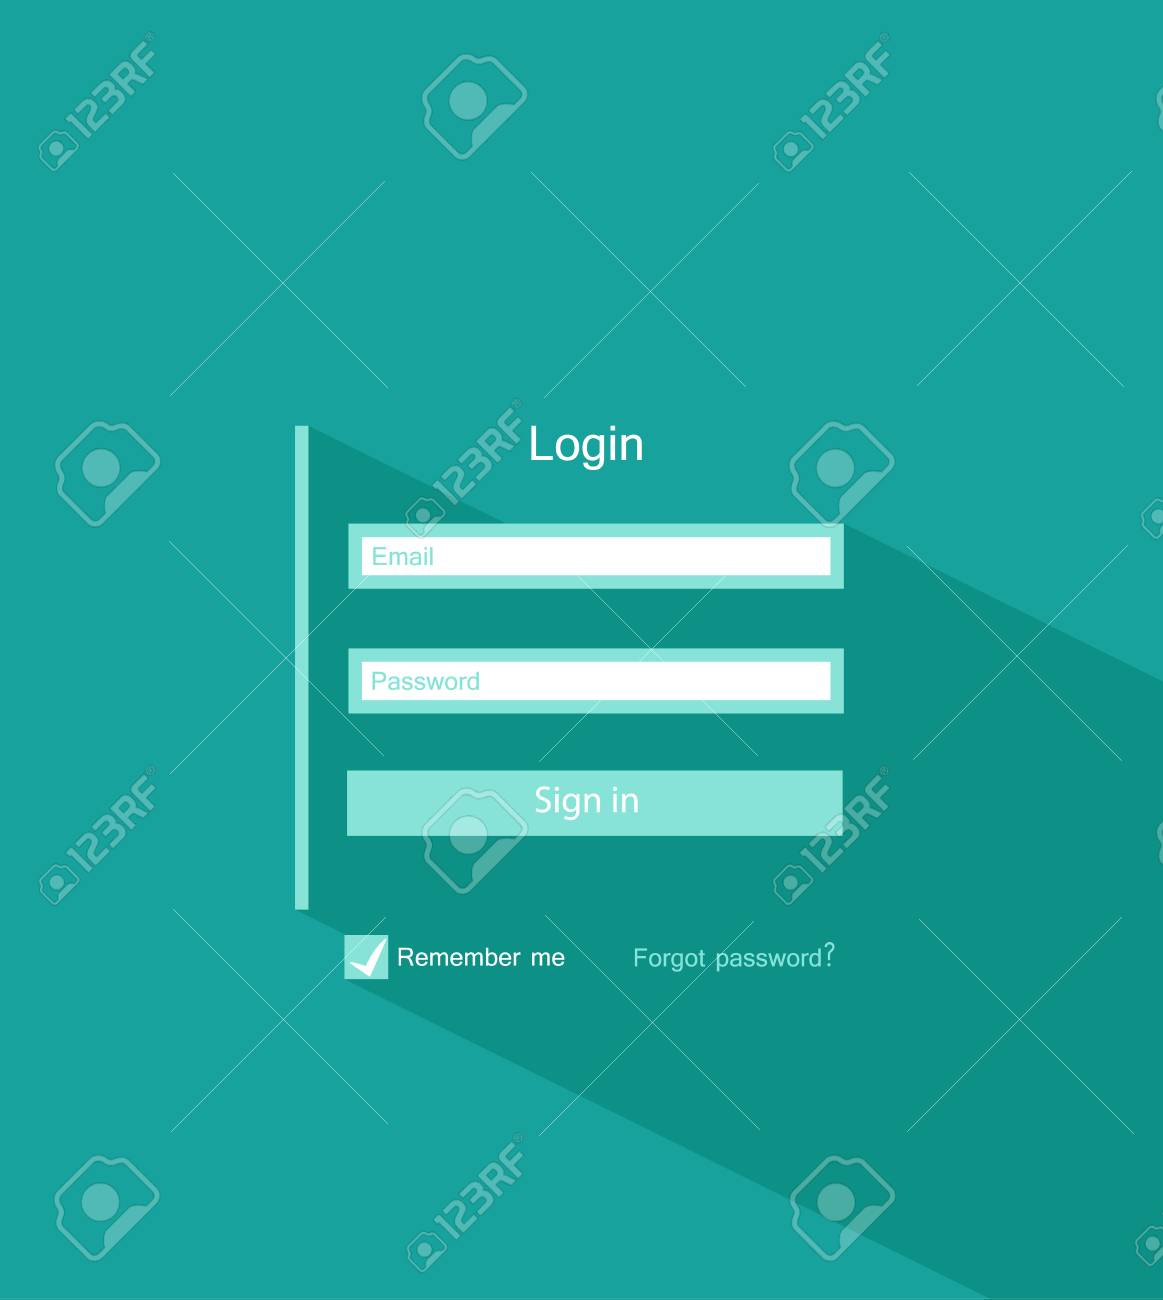 template background login form flat ui design royalty free cliparts